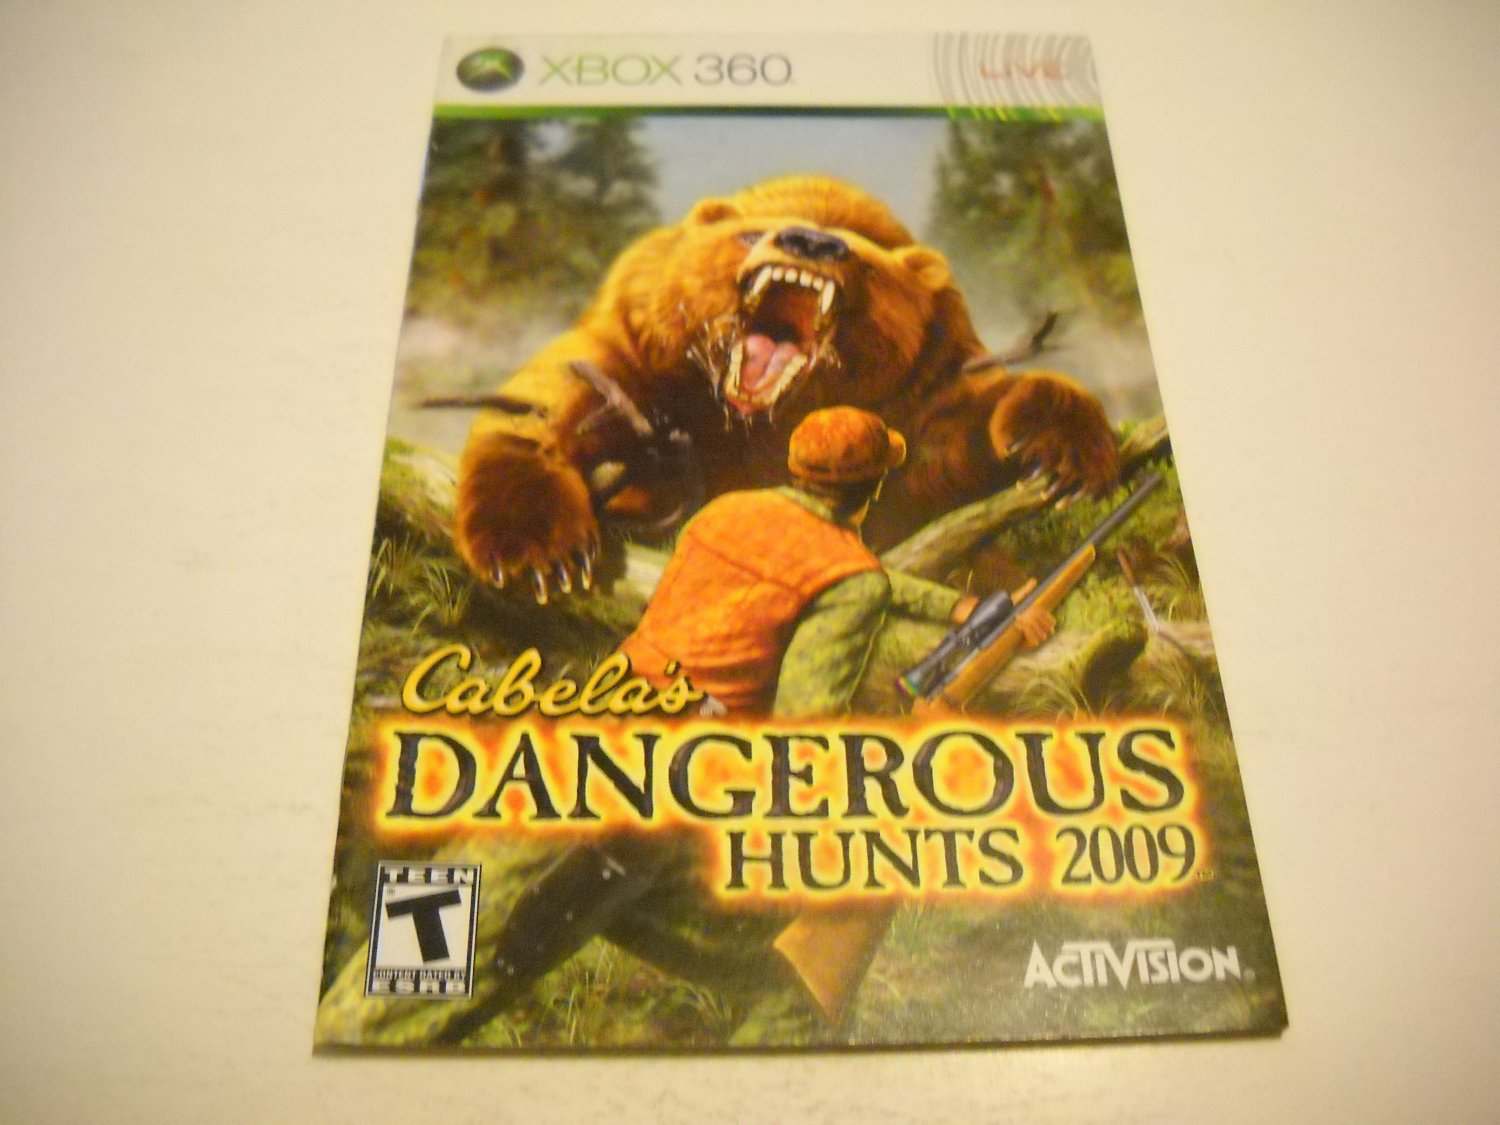 Manual ONLY ~  for Cabela's Dangerous Hunts 2009   - Xbox 360 Instruction Booklet